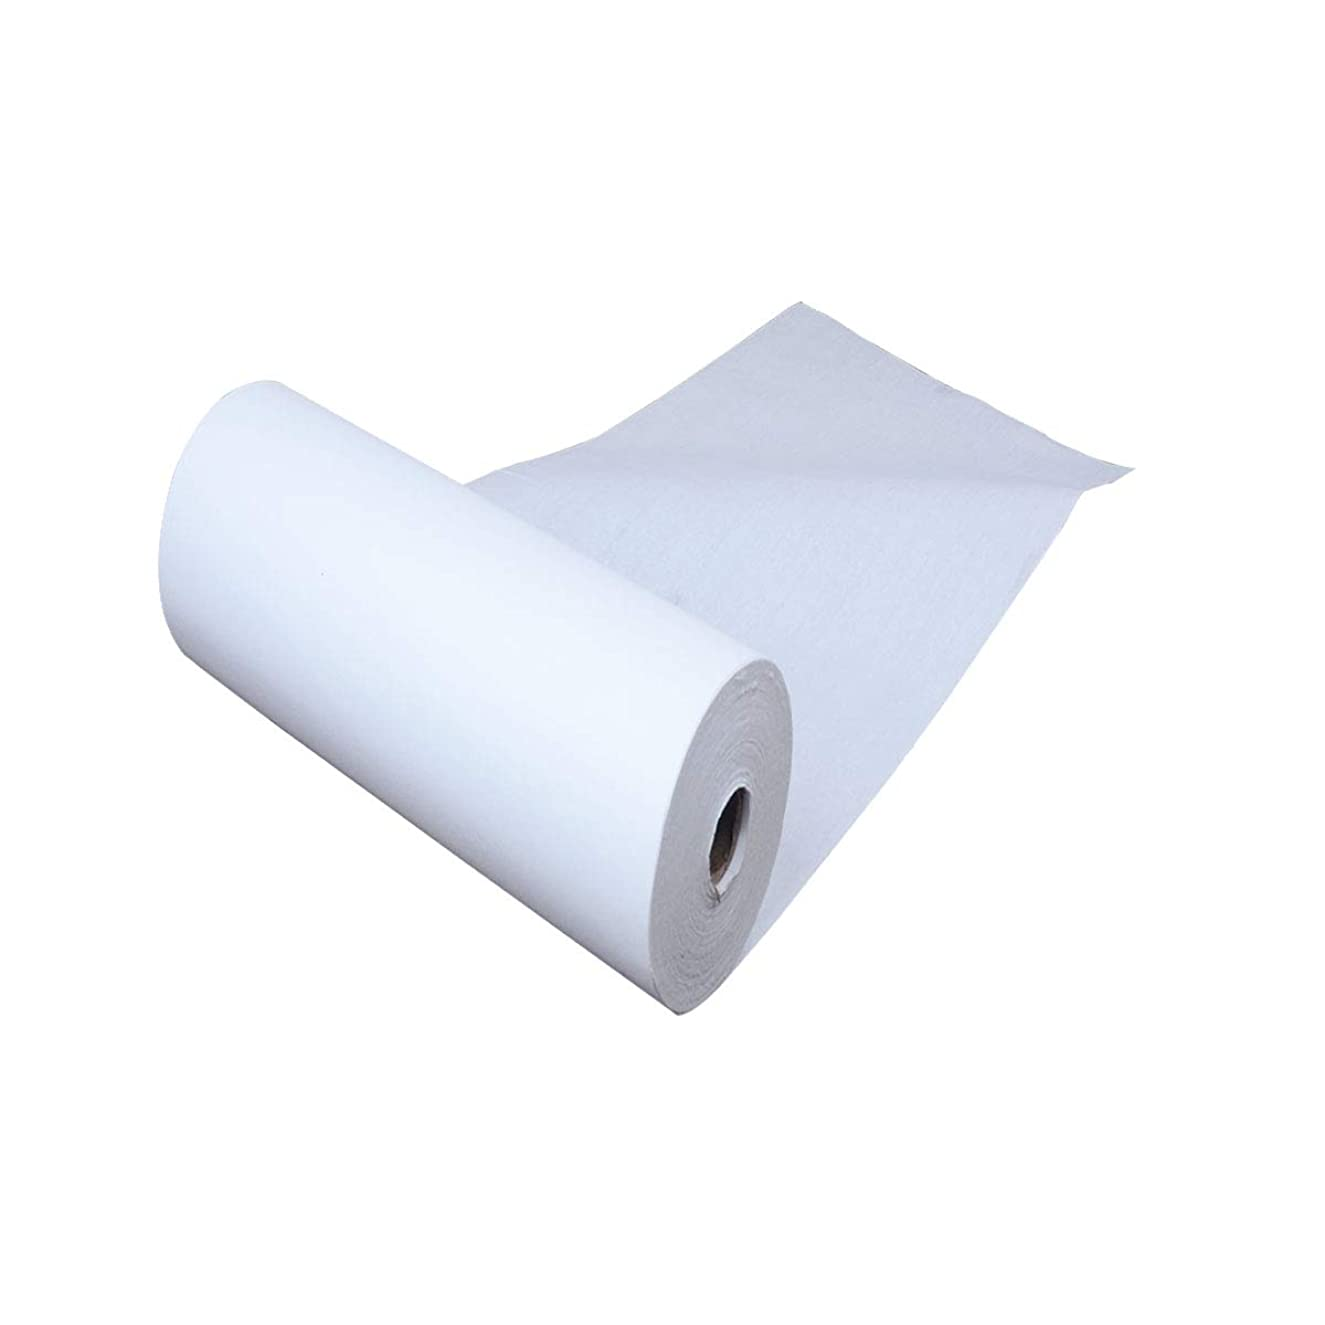 Tianjintang Chinese Super Long Half Raw Half Ripe 半生半熟 Blank Xuan Ppaer Rice Paper Roll for Calligraphy Painting(0.35m100m)